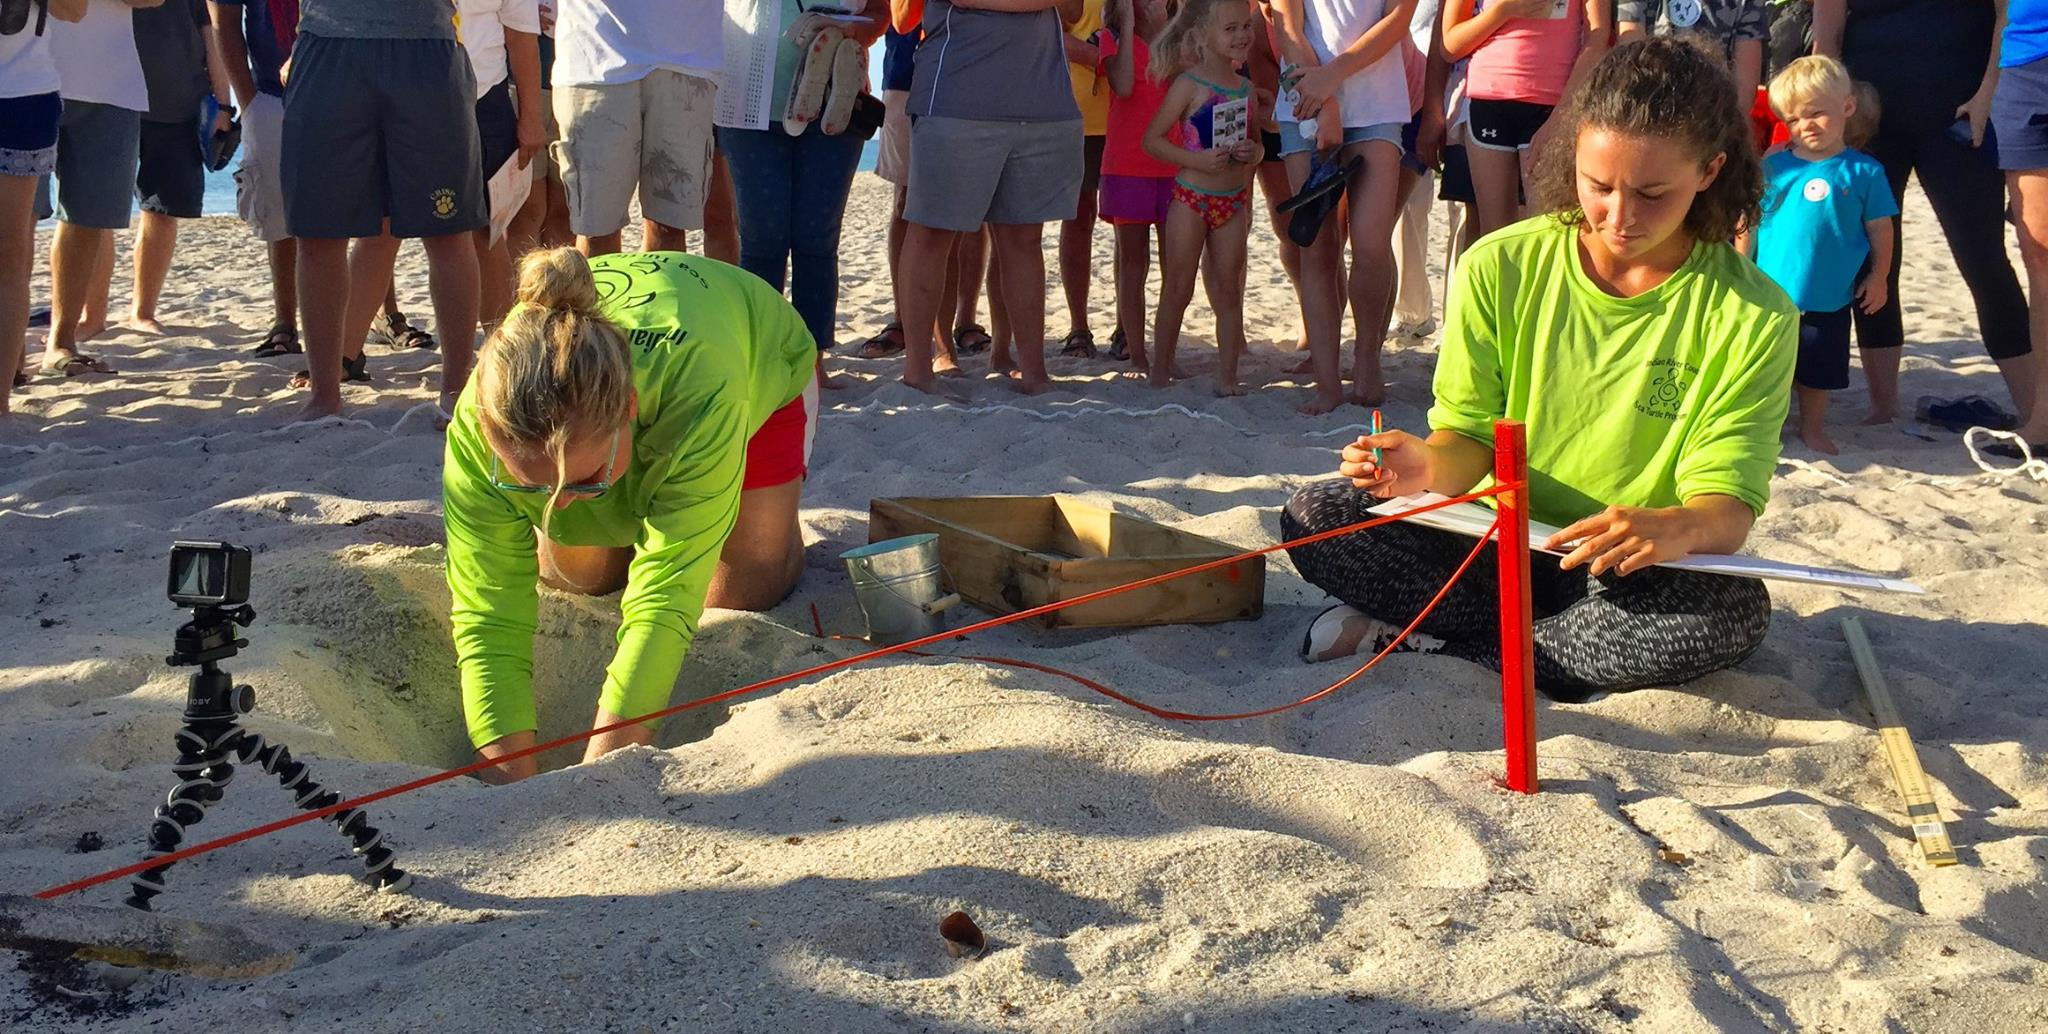 Hatchling saved at IRC Sea turtle nesting digphoto credit; Marlen Hurter